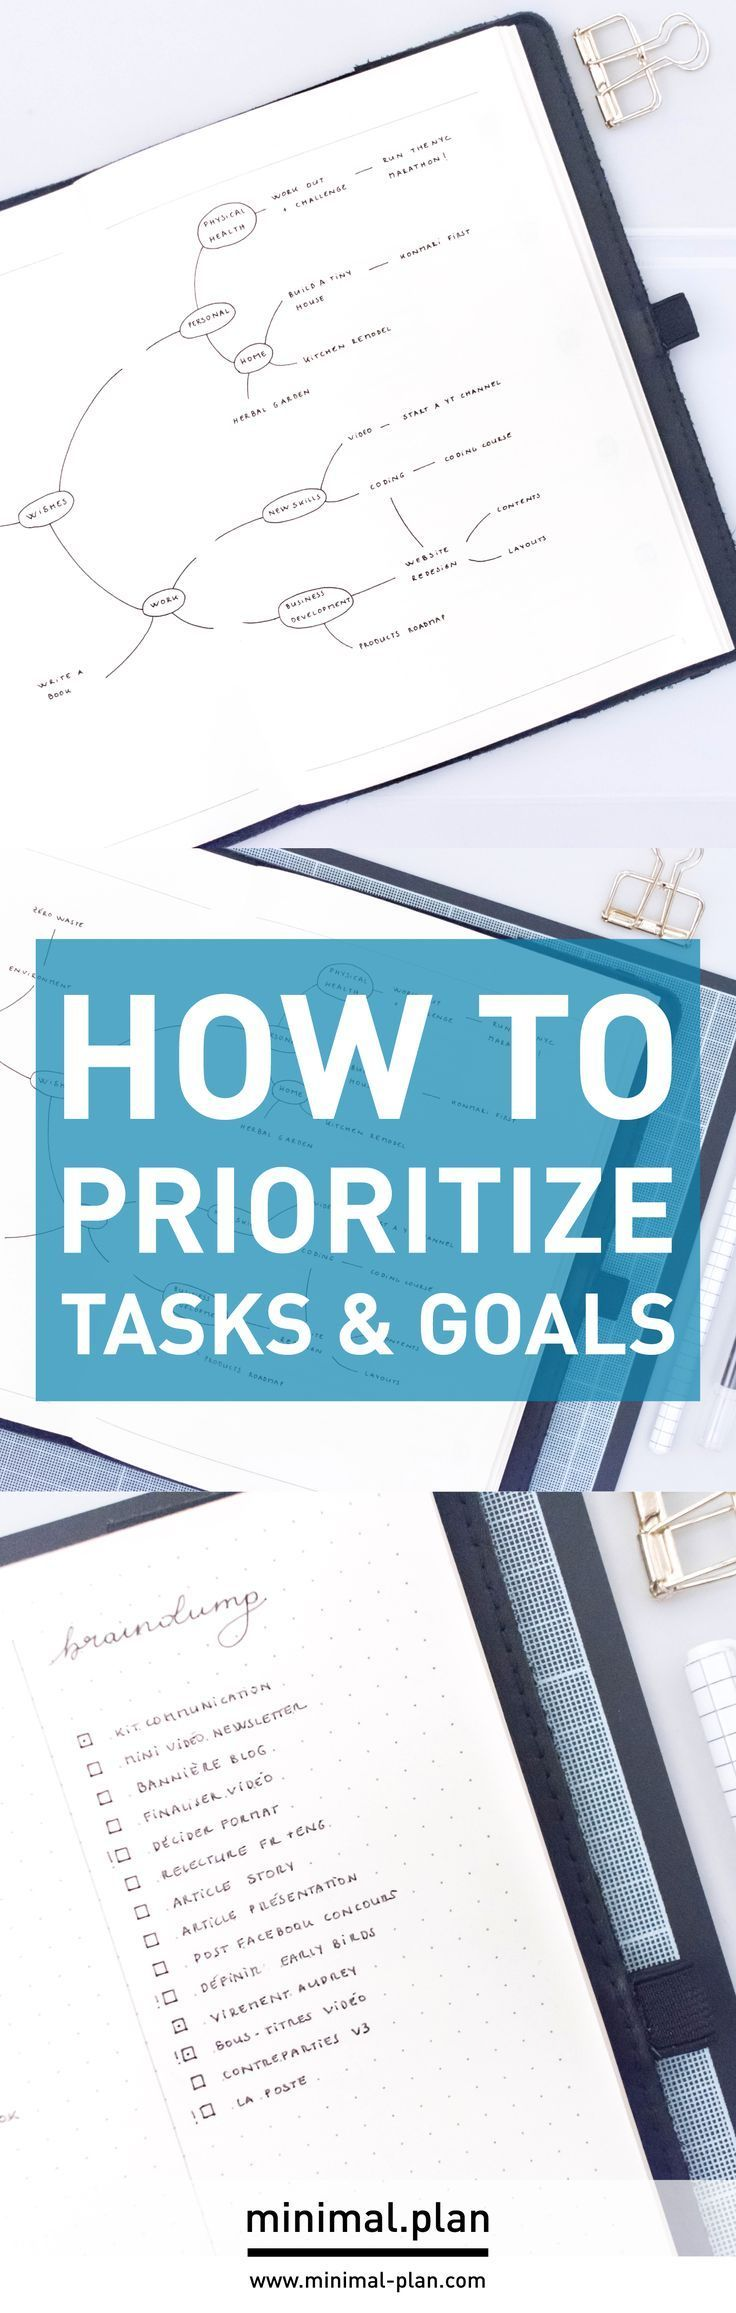 Find Out How To Prioritize Your Goals And Tasks To Craft A Better